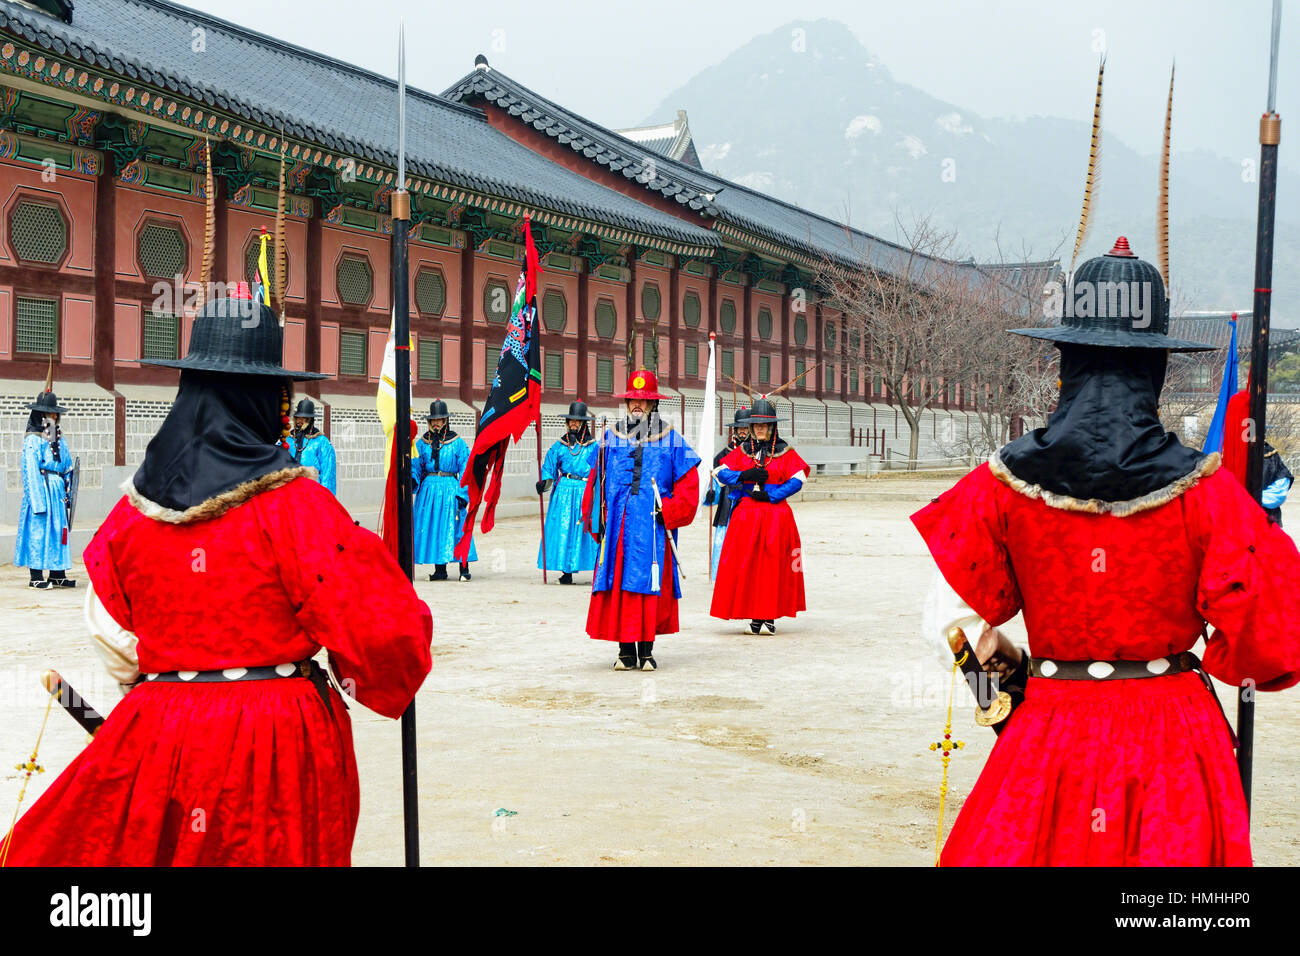 Ändern der Royal Guards Zeremonie, Gyeongbokgung-Palast, Seoul, South Korea Stockbild